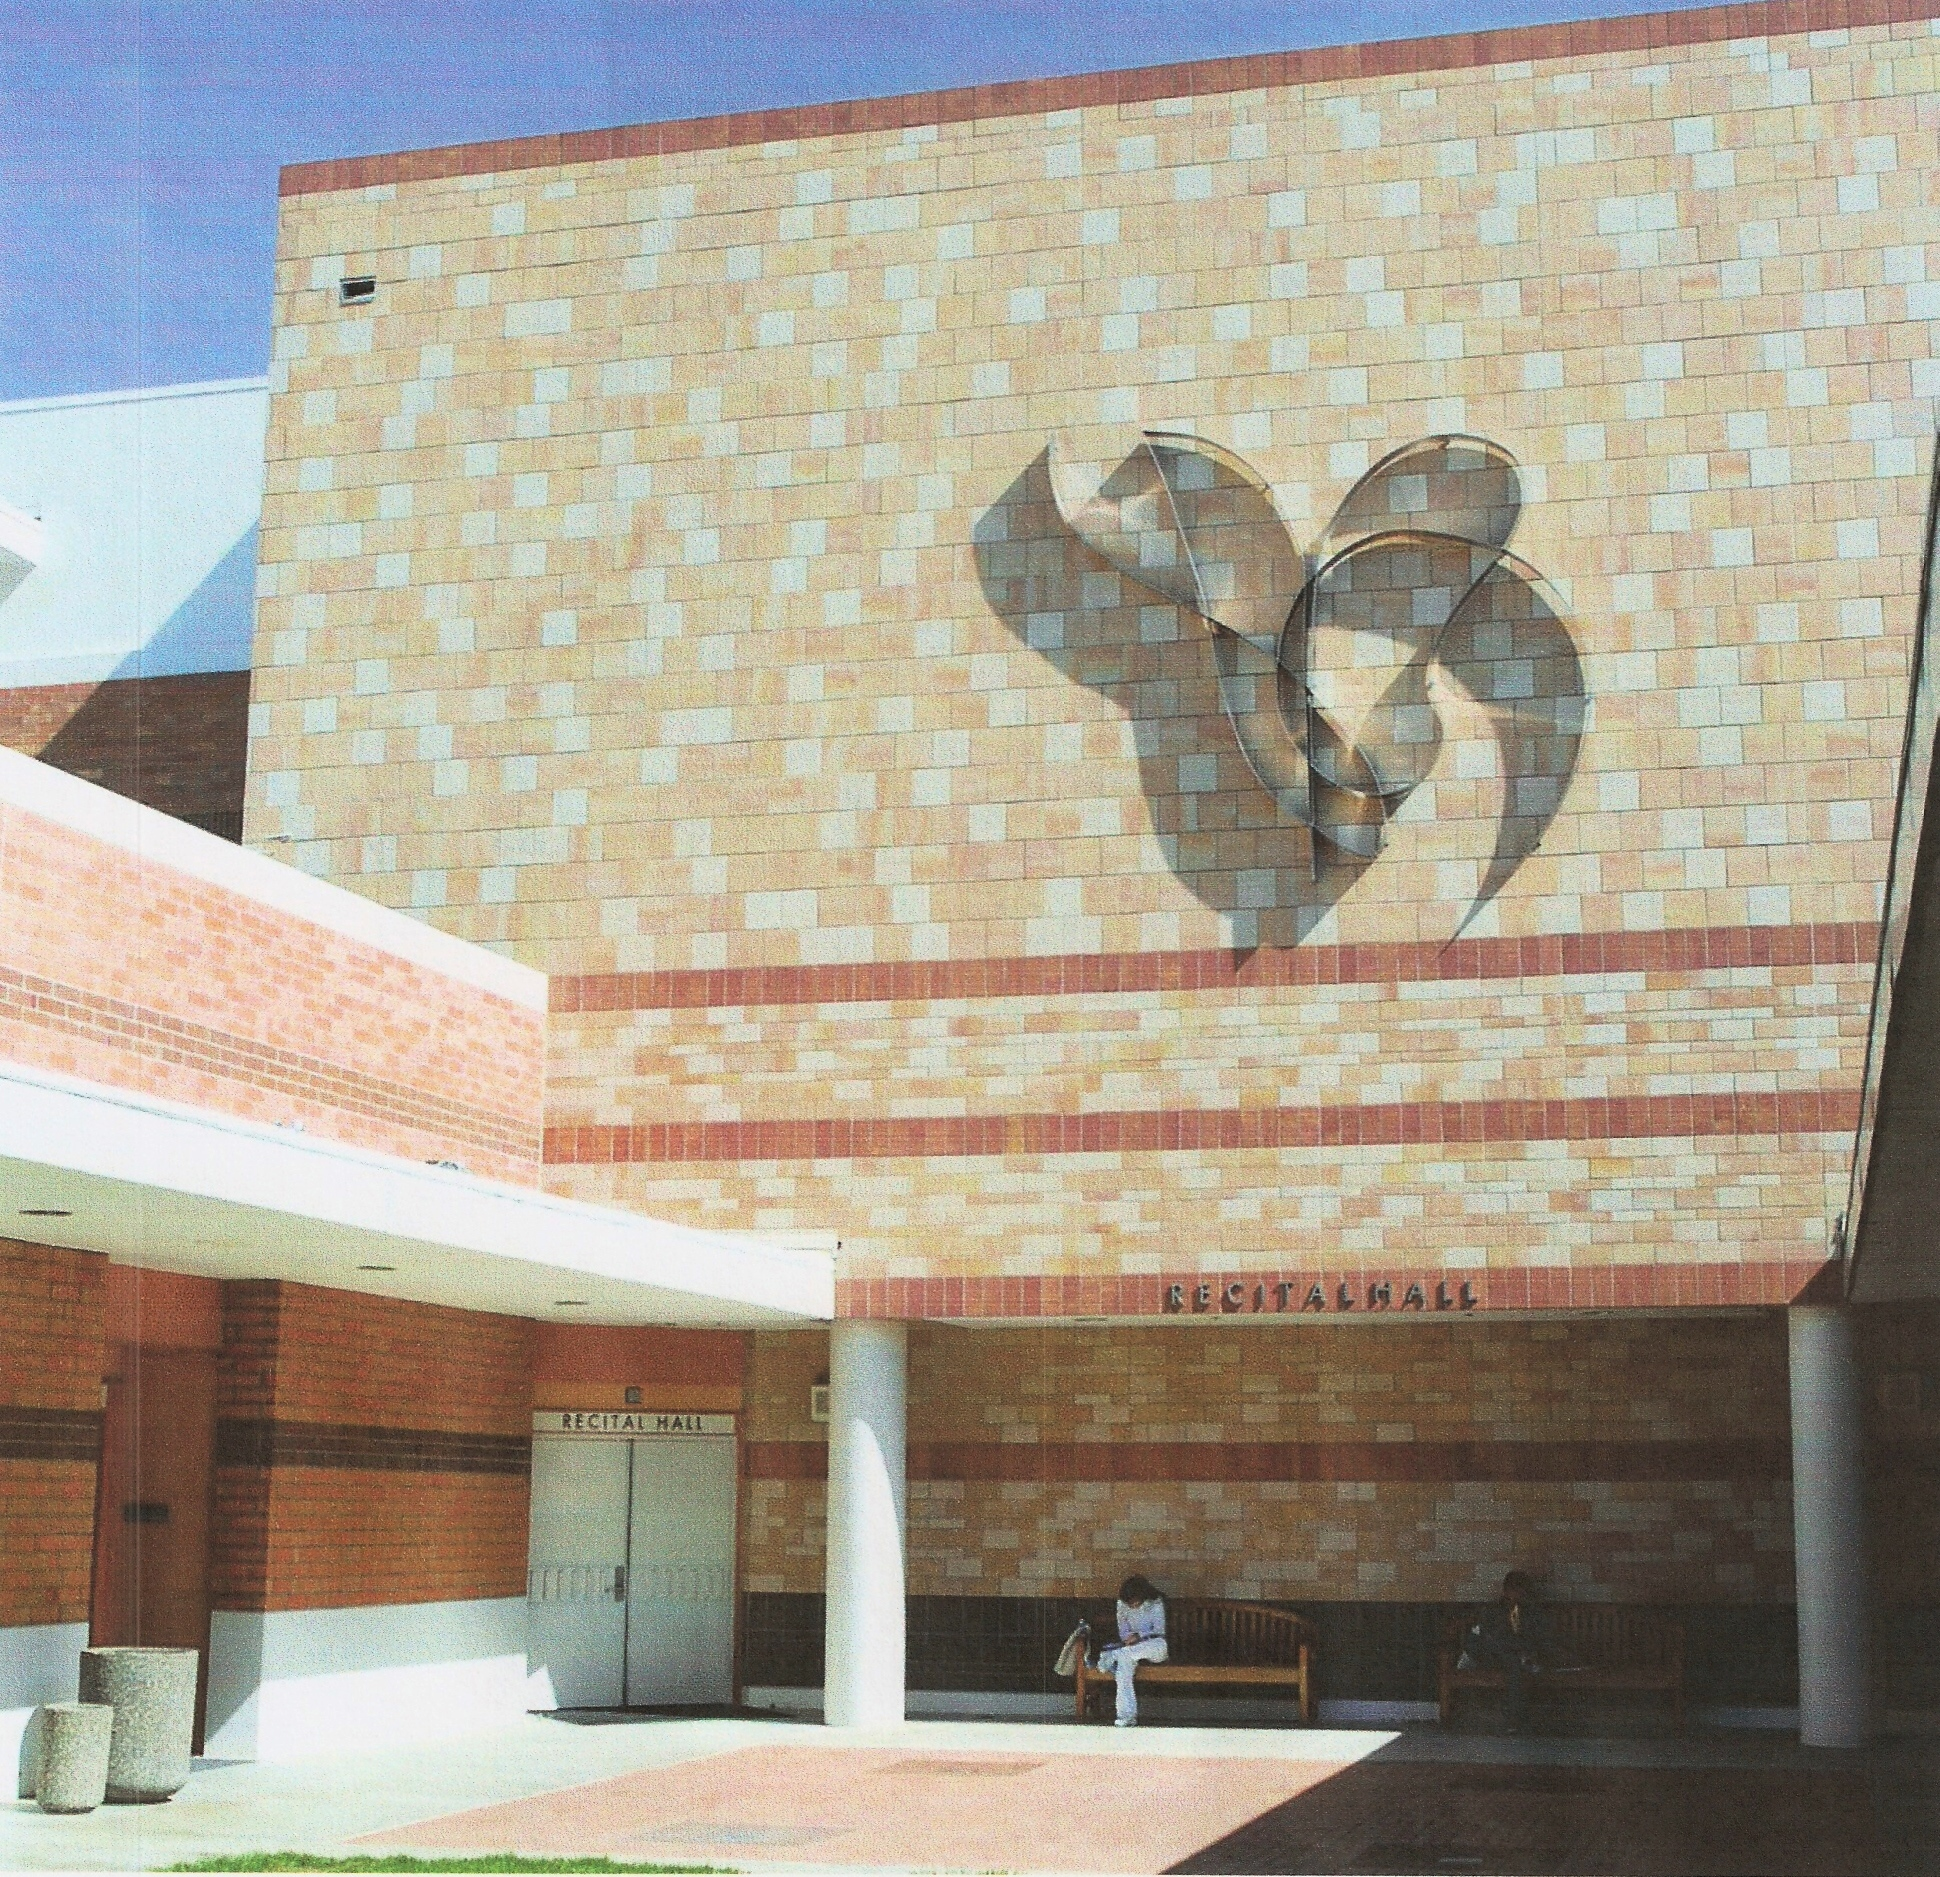 Grace  1990, stainless steel, 19x18 ft  Installed in 2009 at Mt. San Antonio Community College Walnut, California